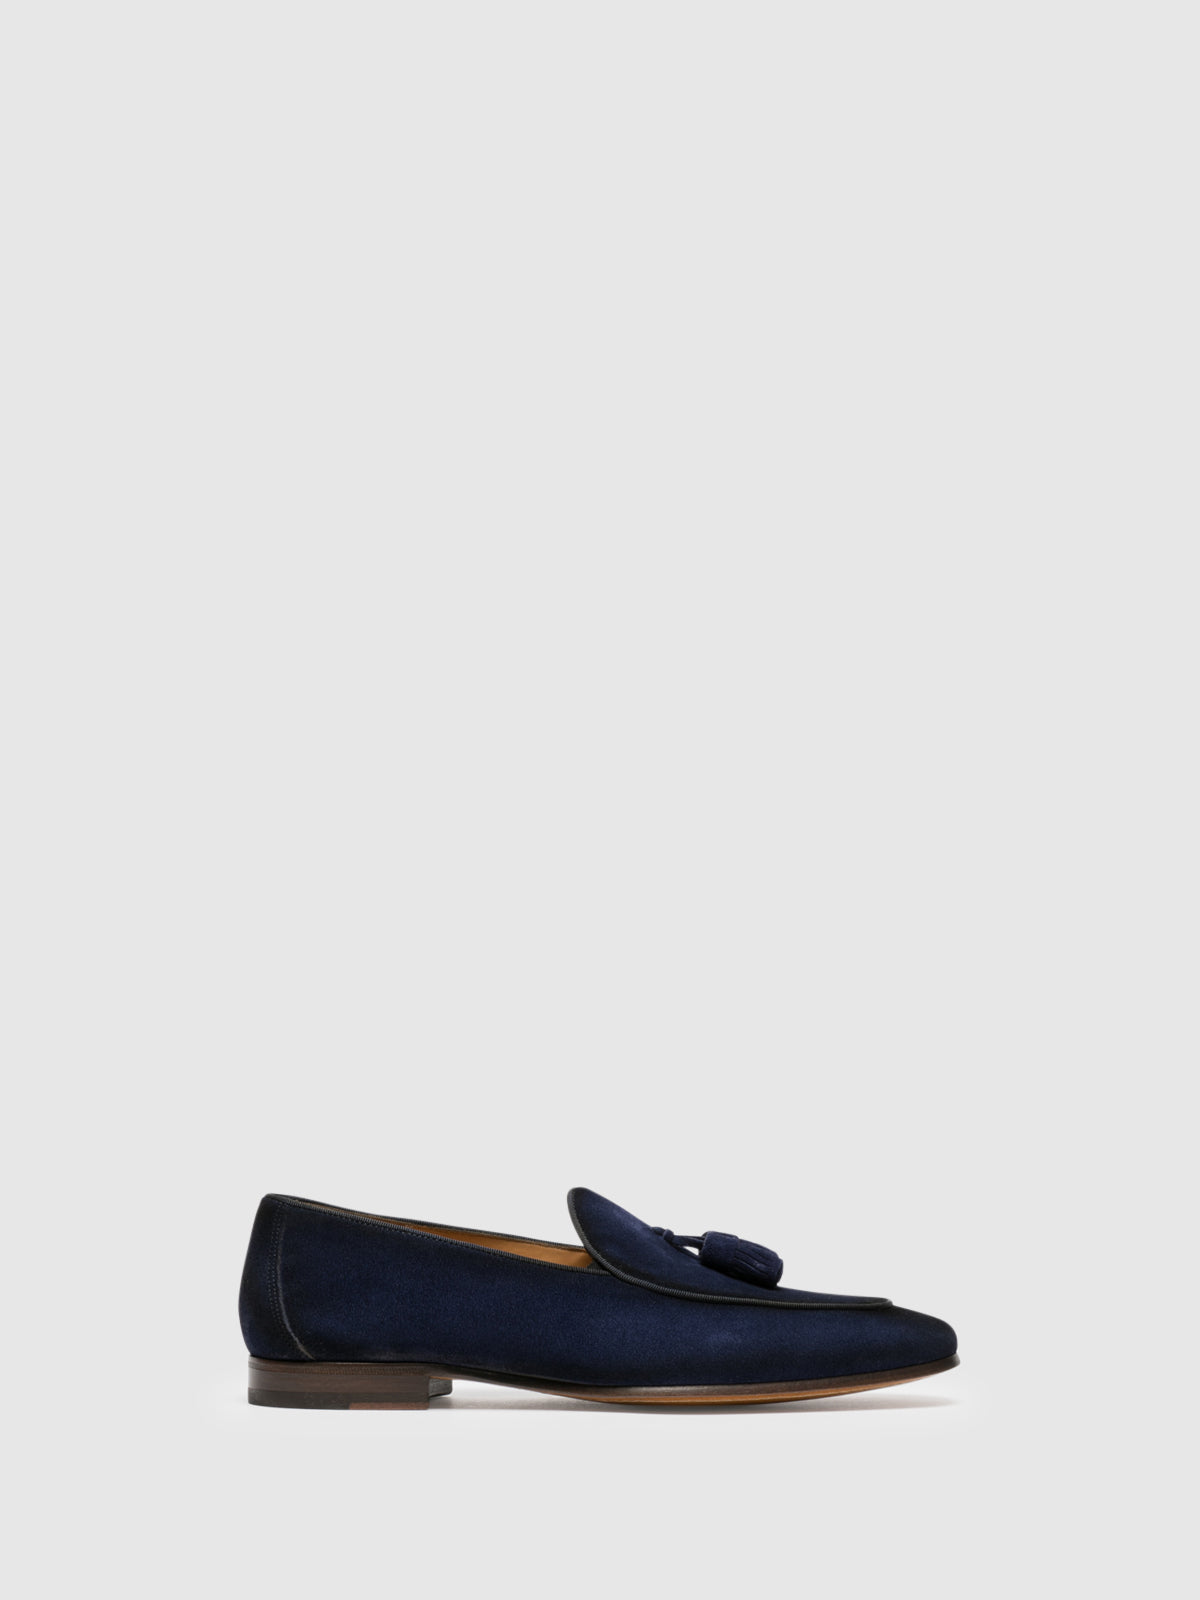 Gino Bianchi Zapatos Loafers en color Azul